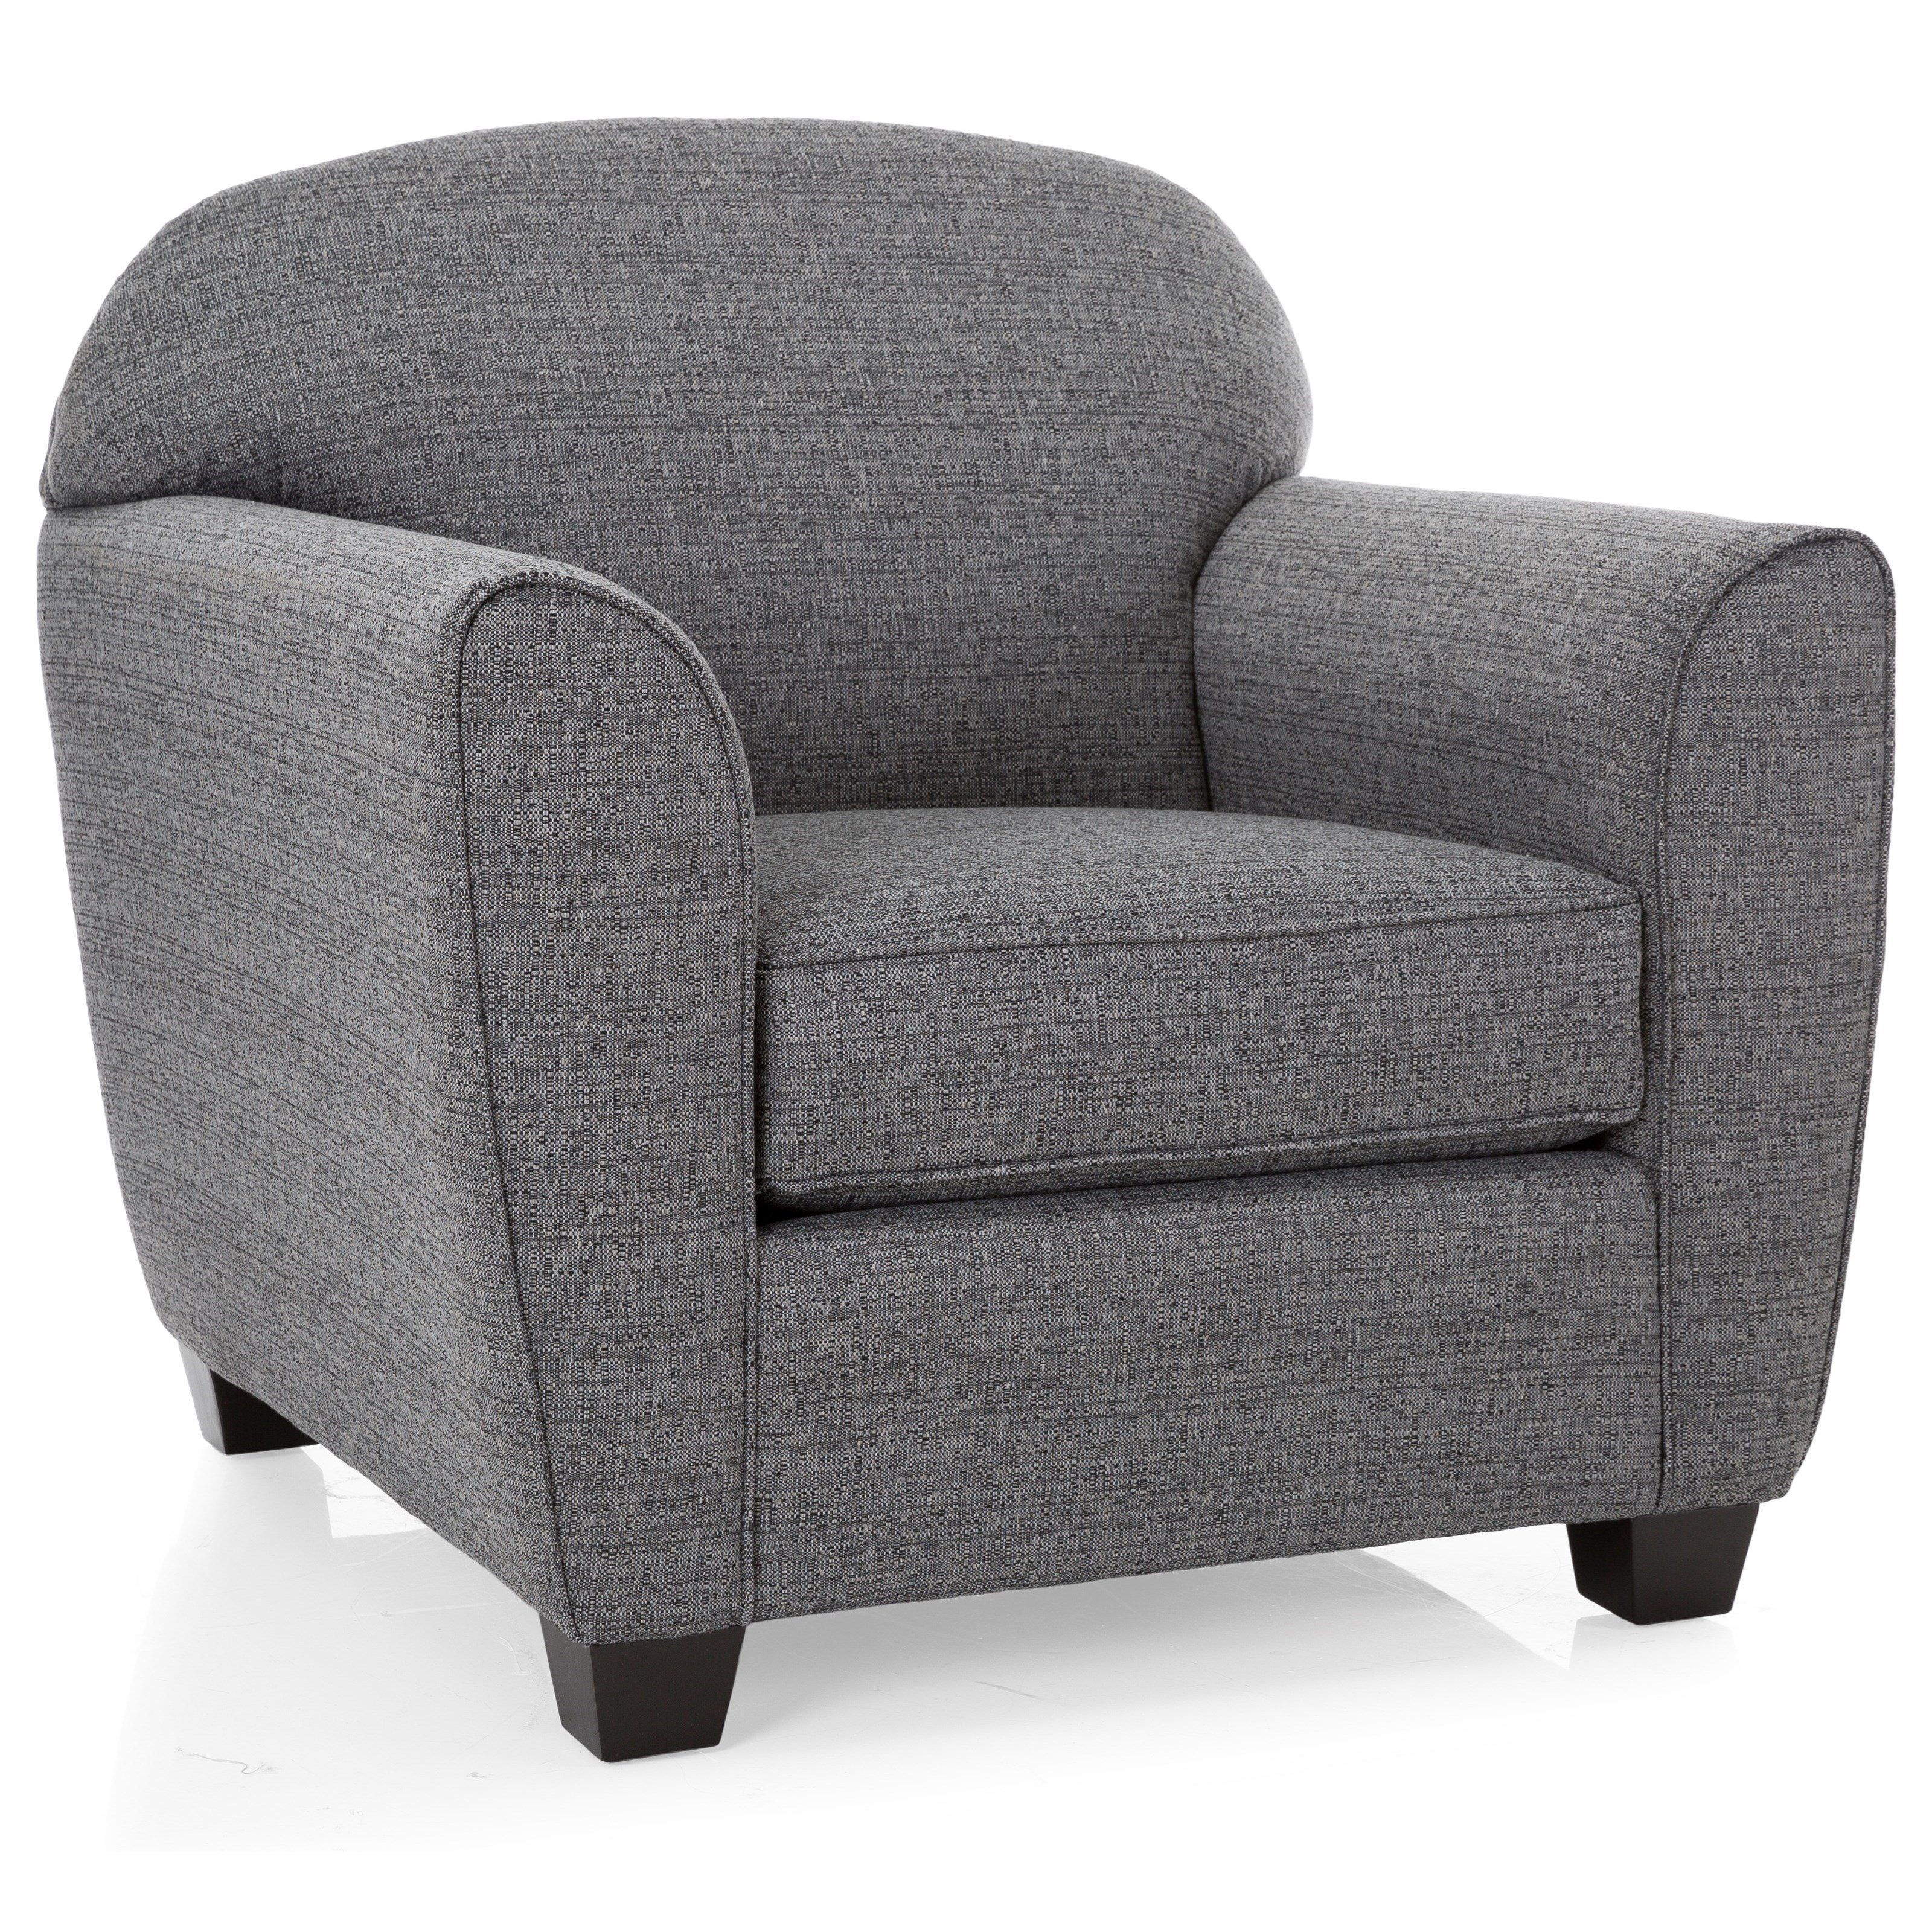 2317 Upholstered Chair by Decor-Rest at Fine Home Furnishings